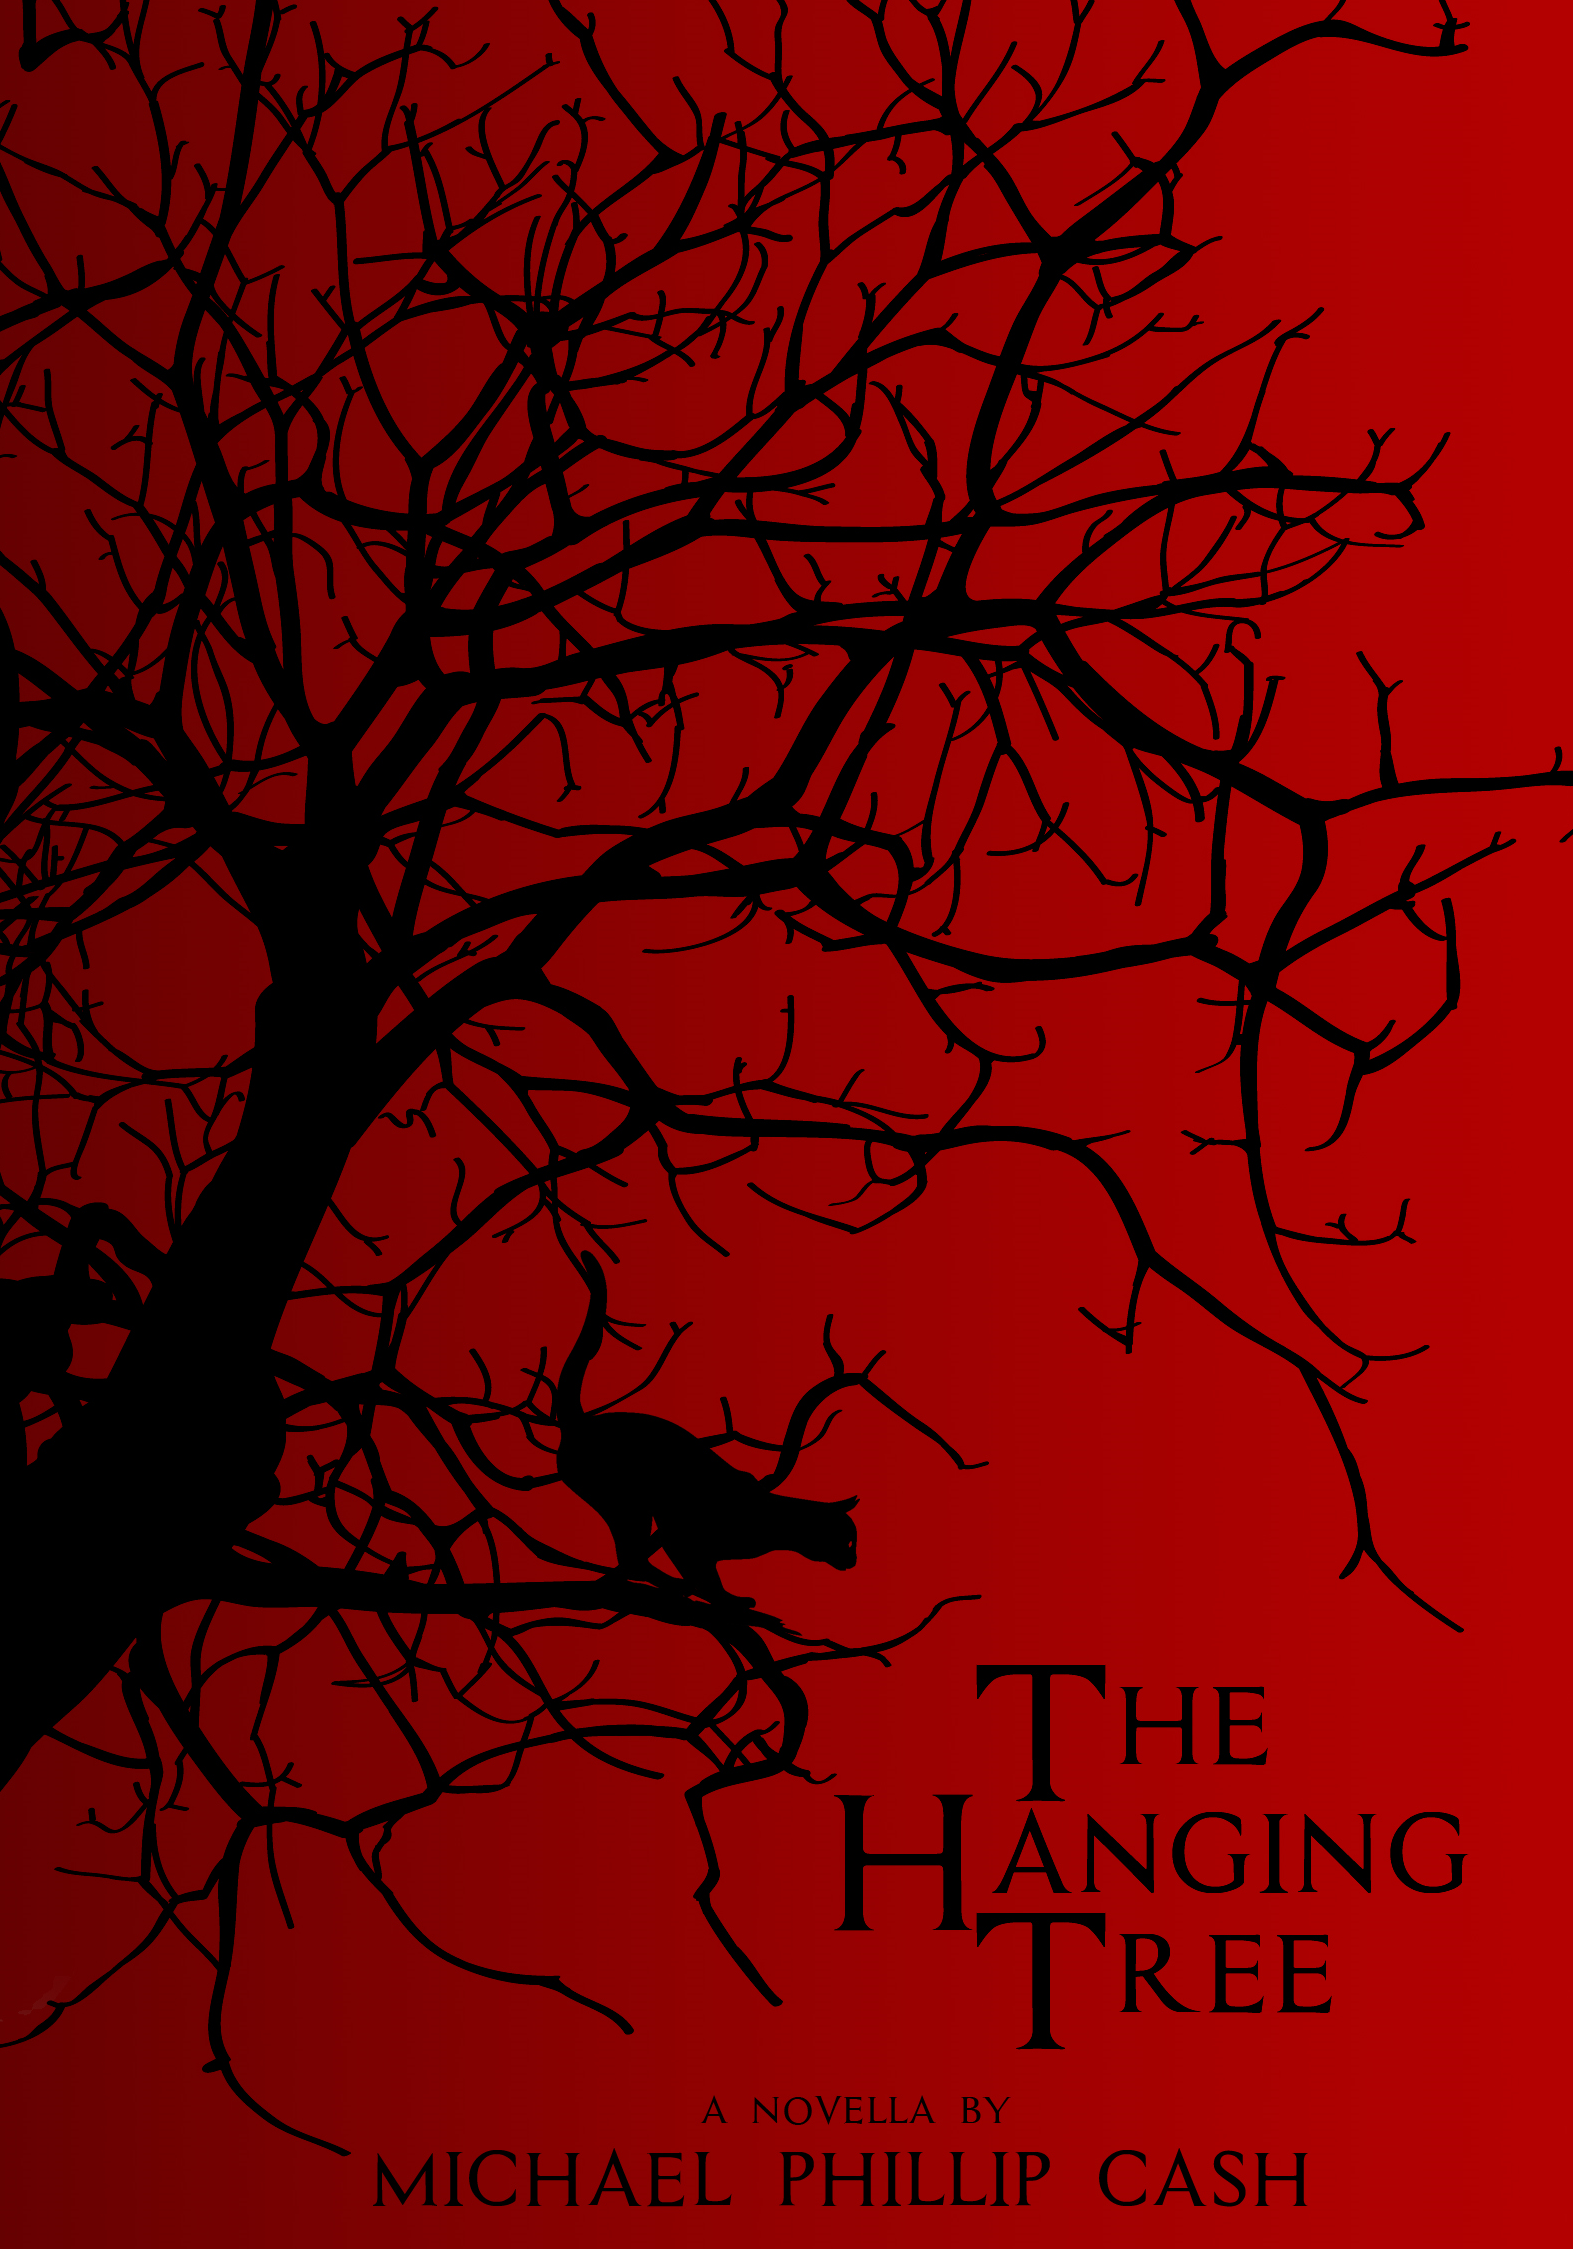 hanging tree book trailer loewenherz creative